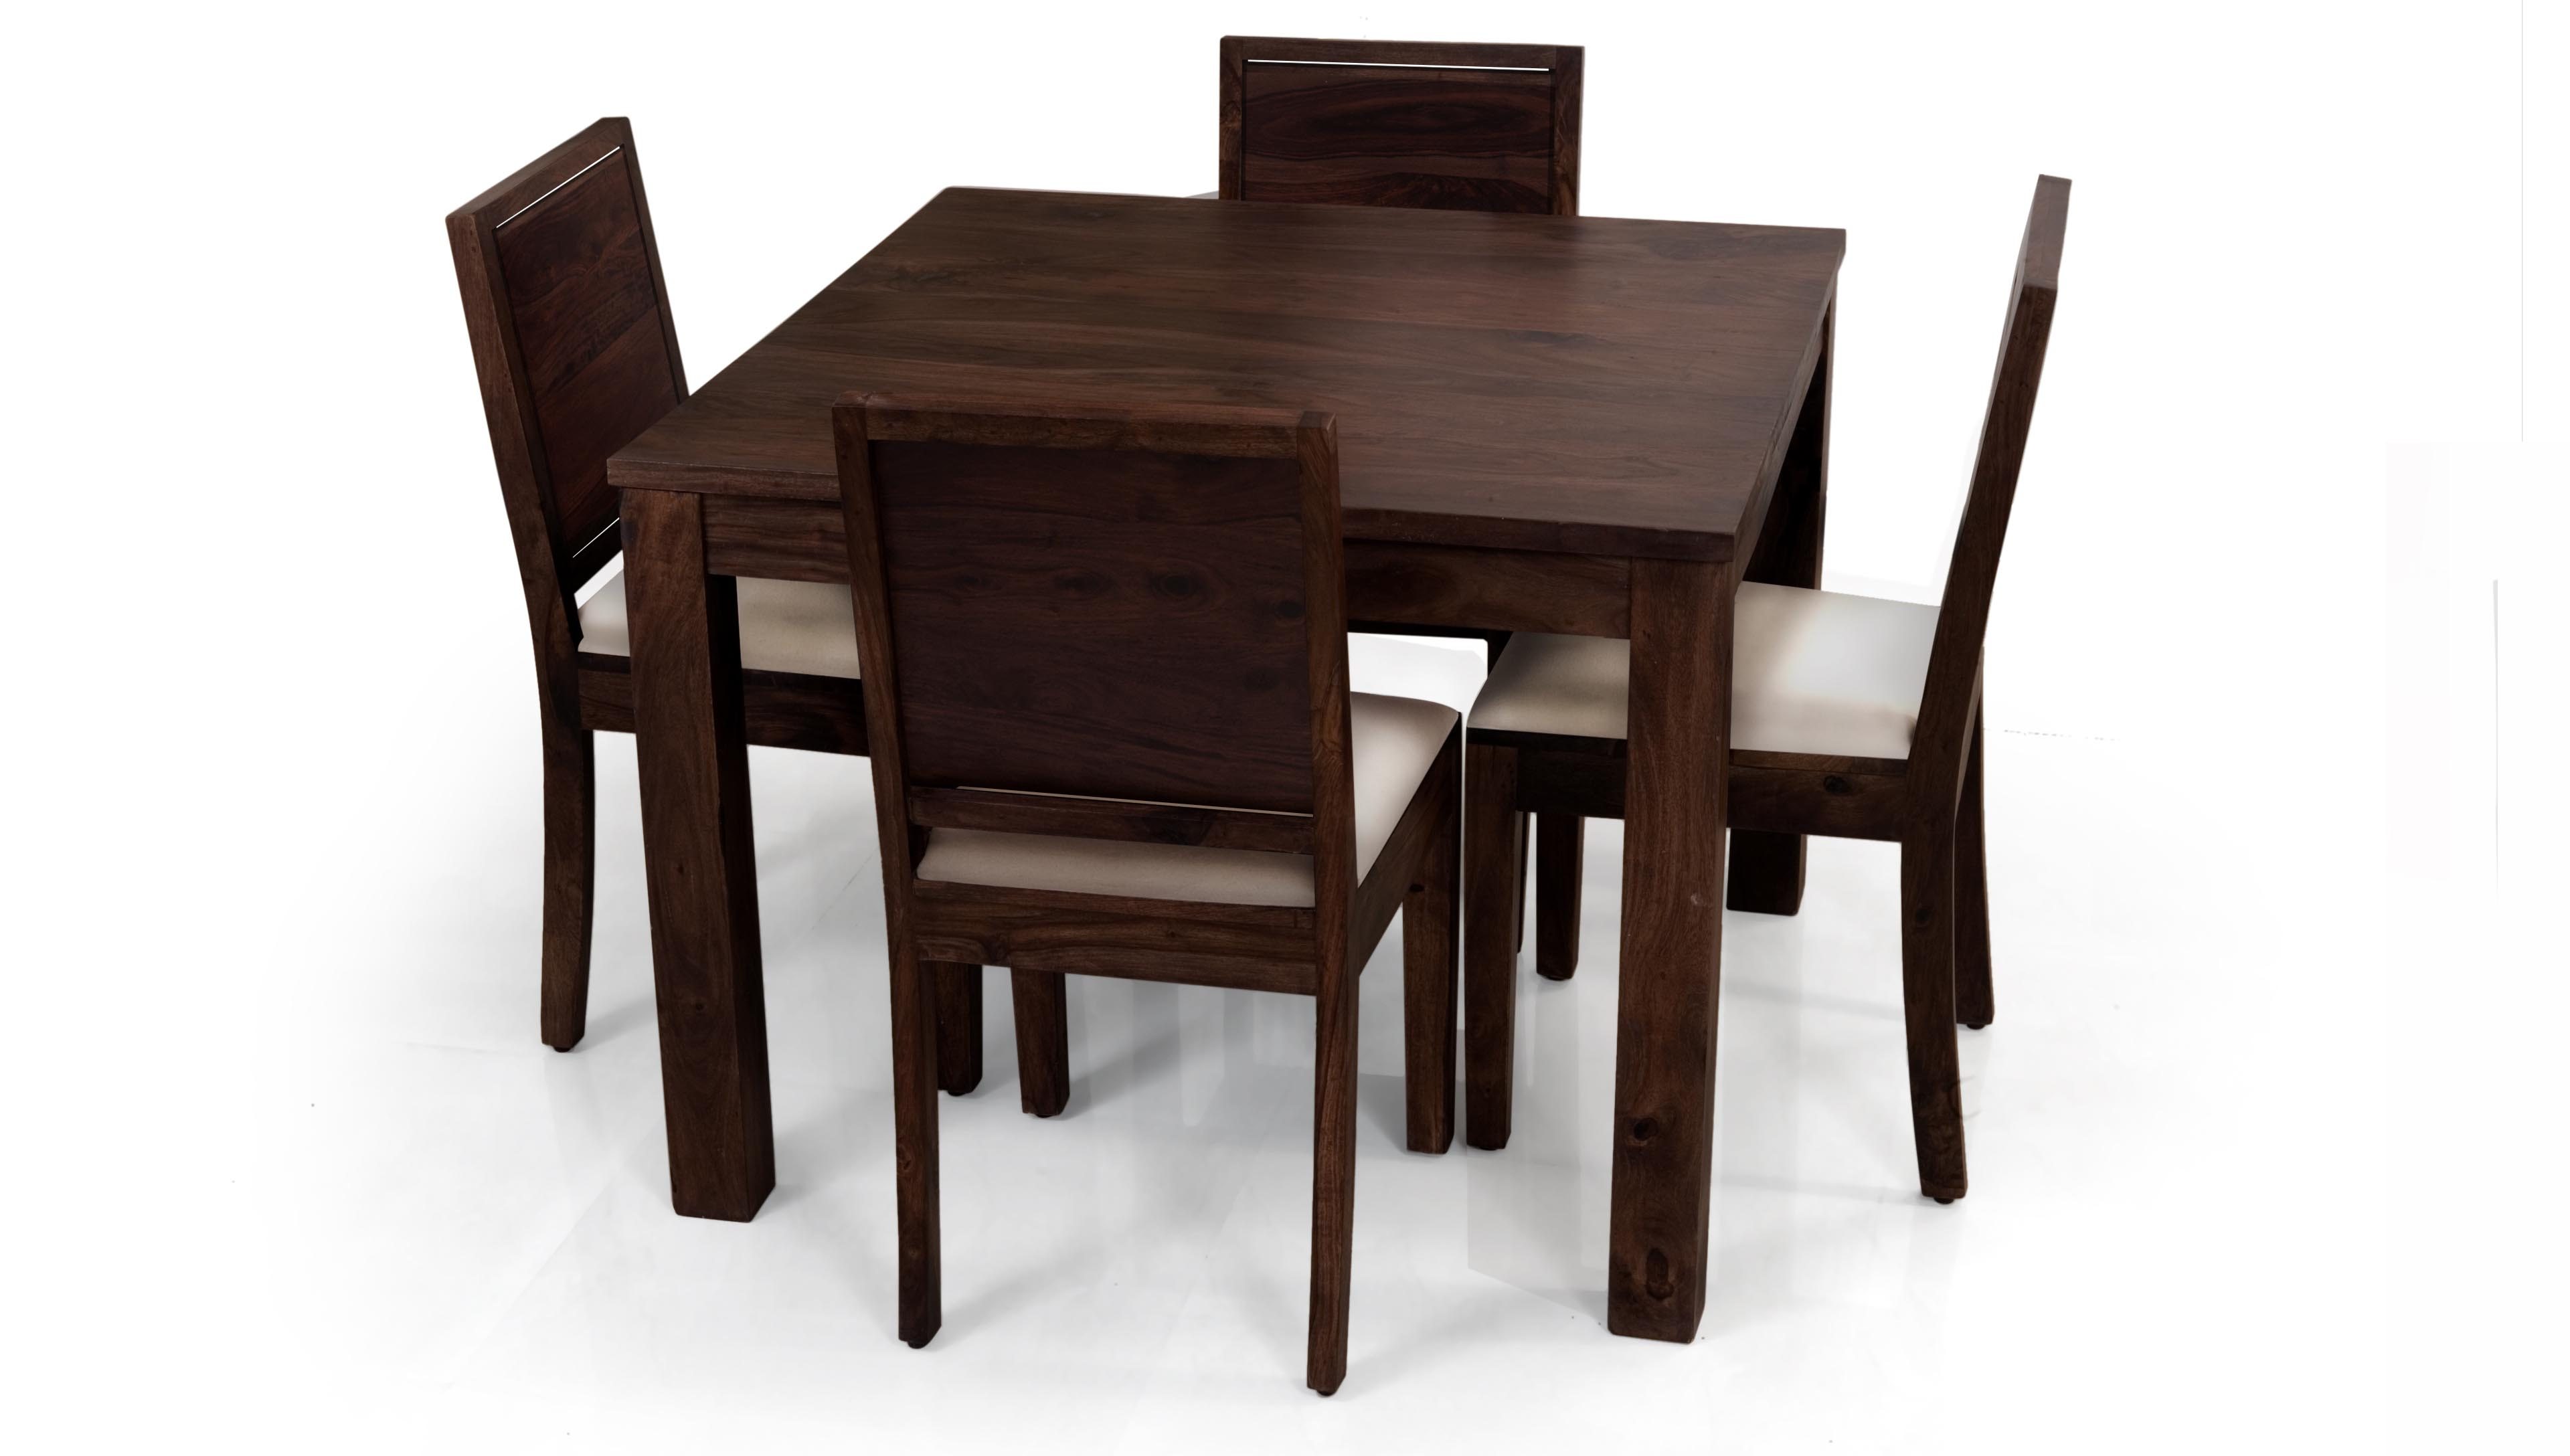 Square dining table for 4 homesfeed for Dining room table for 4